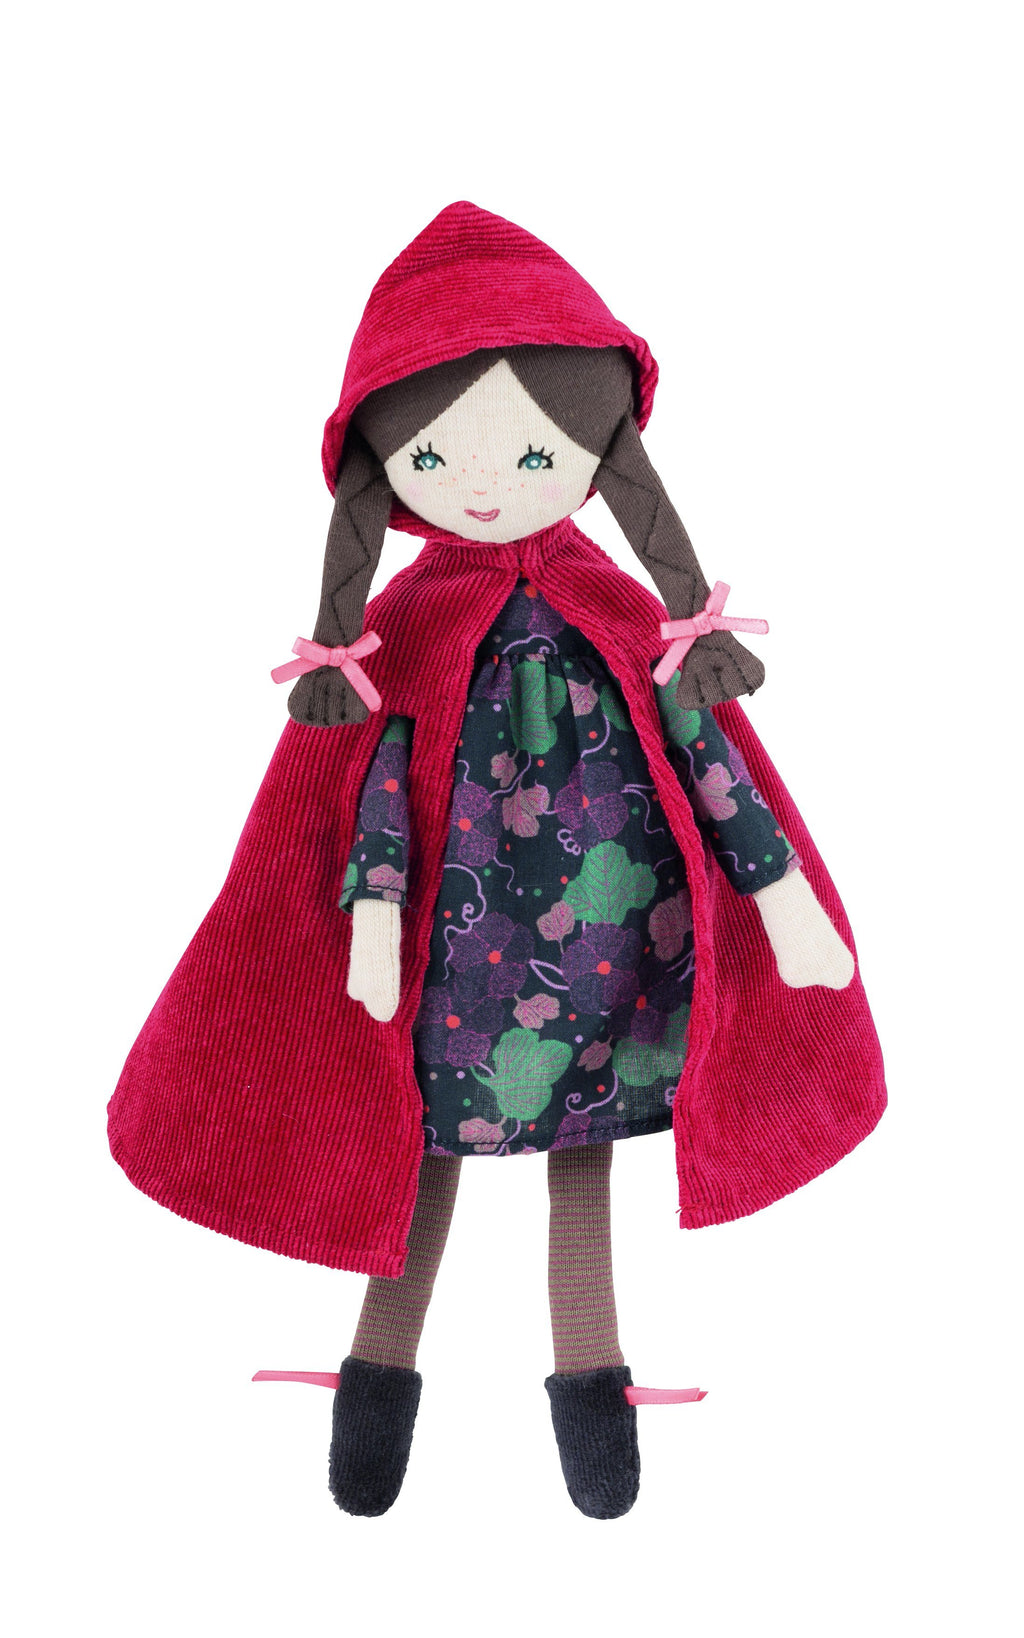 'Mini' Little Red Riding Hood 28cm